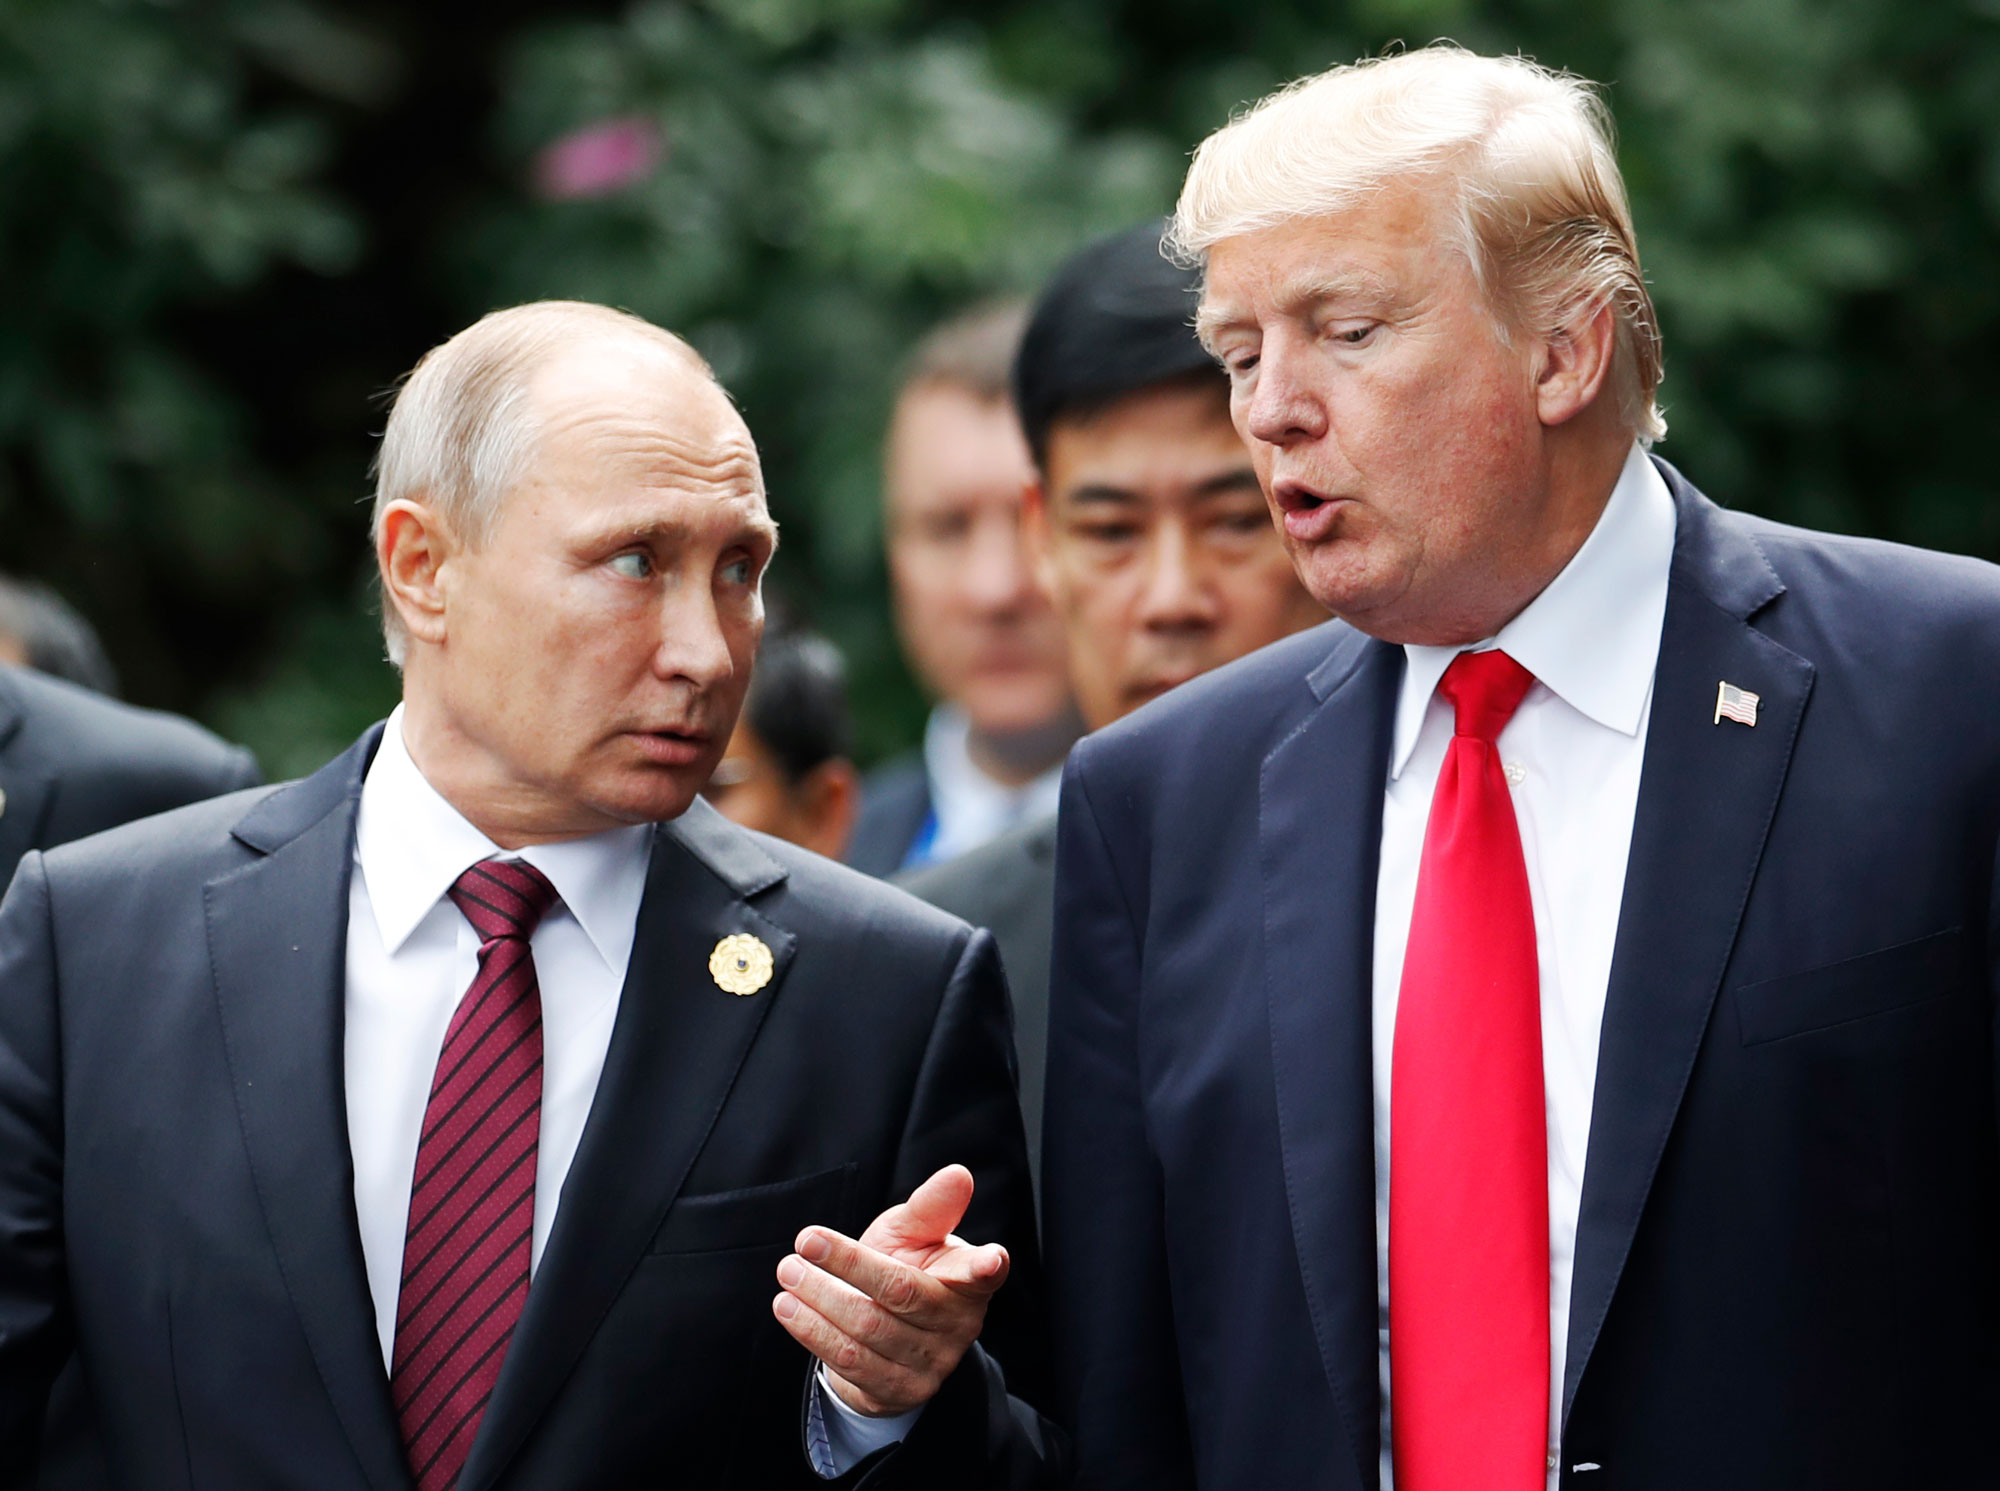 Trump says he will speak with Putin to discuss oil market and trade